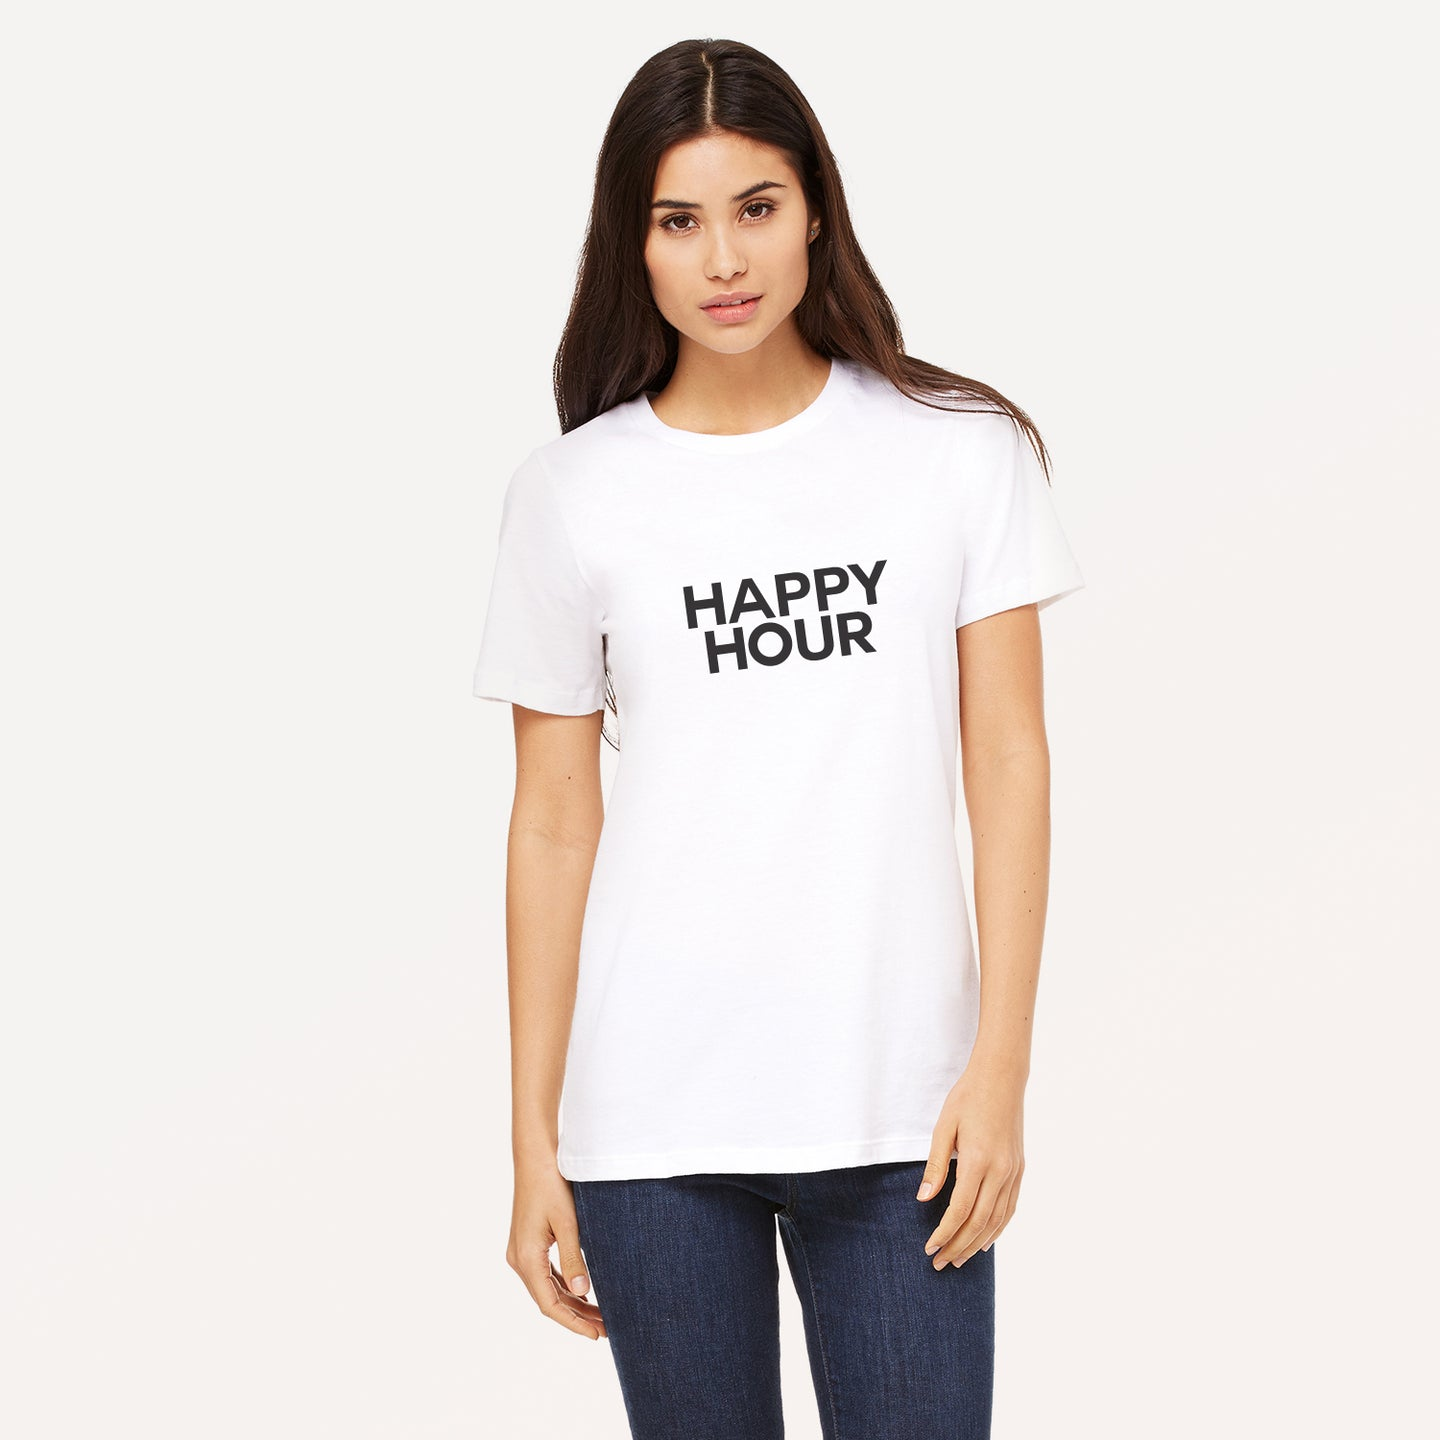 Happy Hour graphic screenprinted in black on a white unisex relaxed cotton jersey t-shirt.